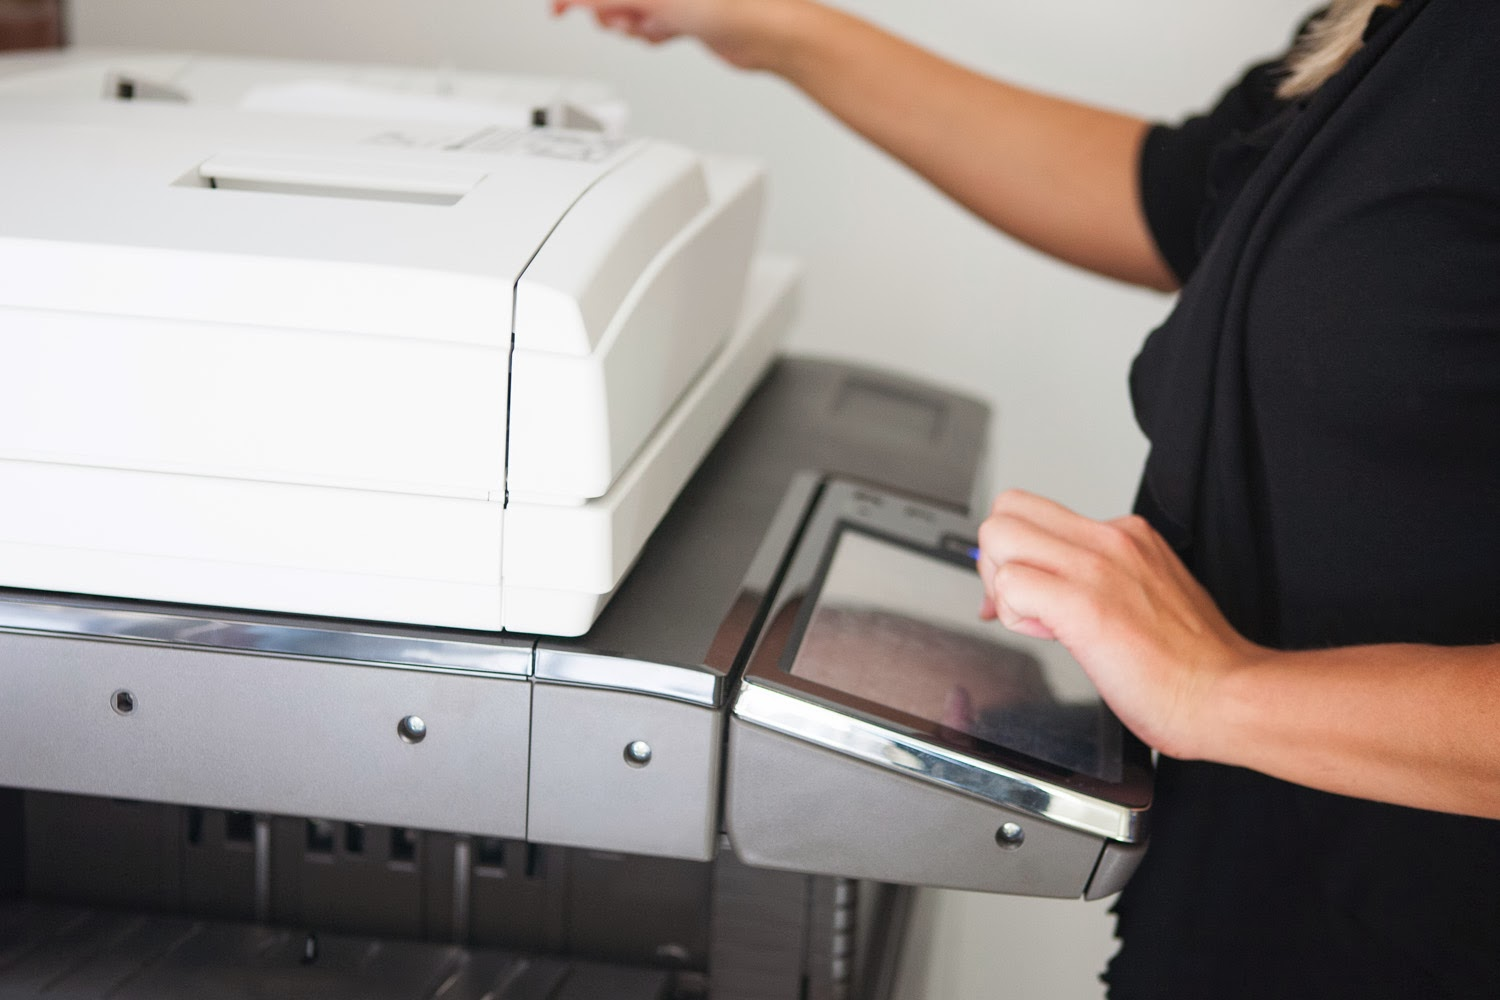 Common Printer Paper Buying Mistakes To Avoid | THE ... - photo#10